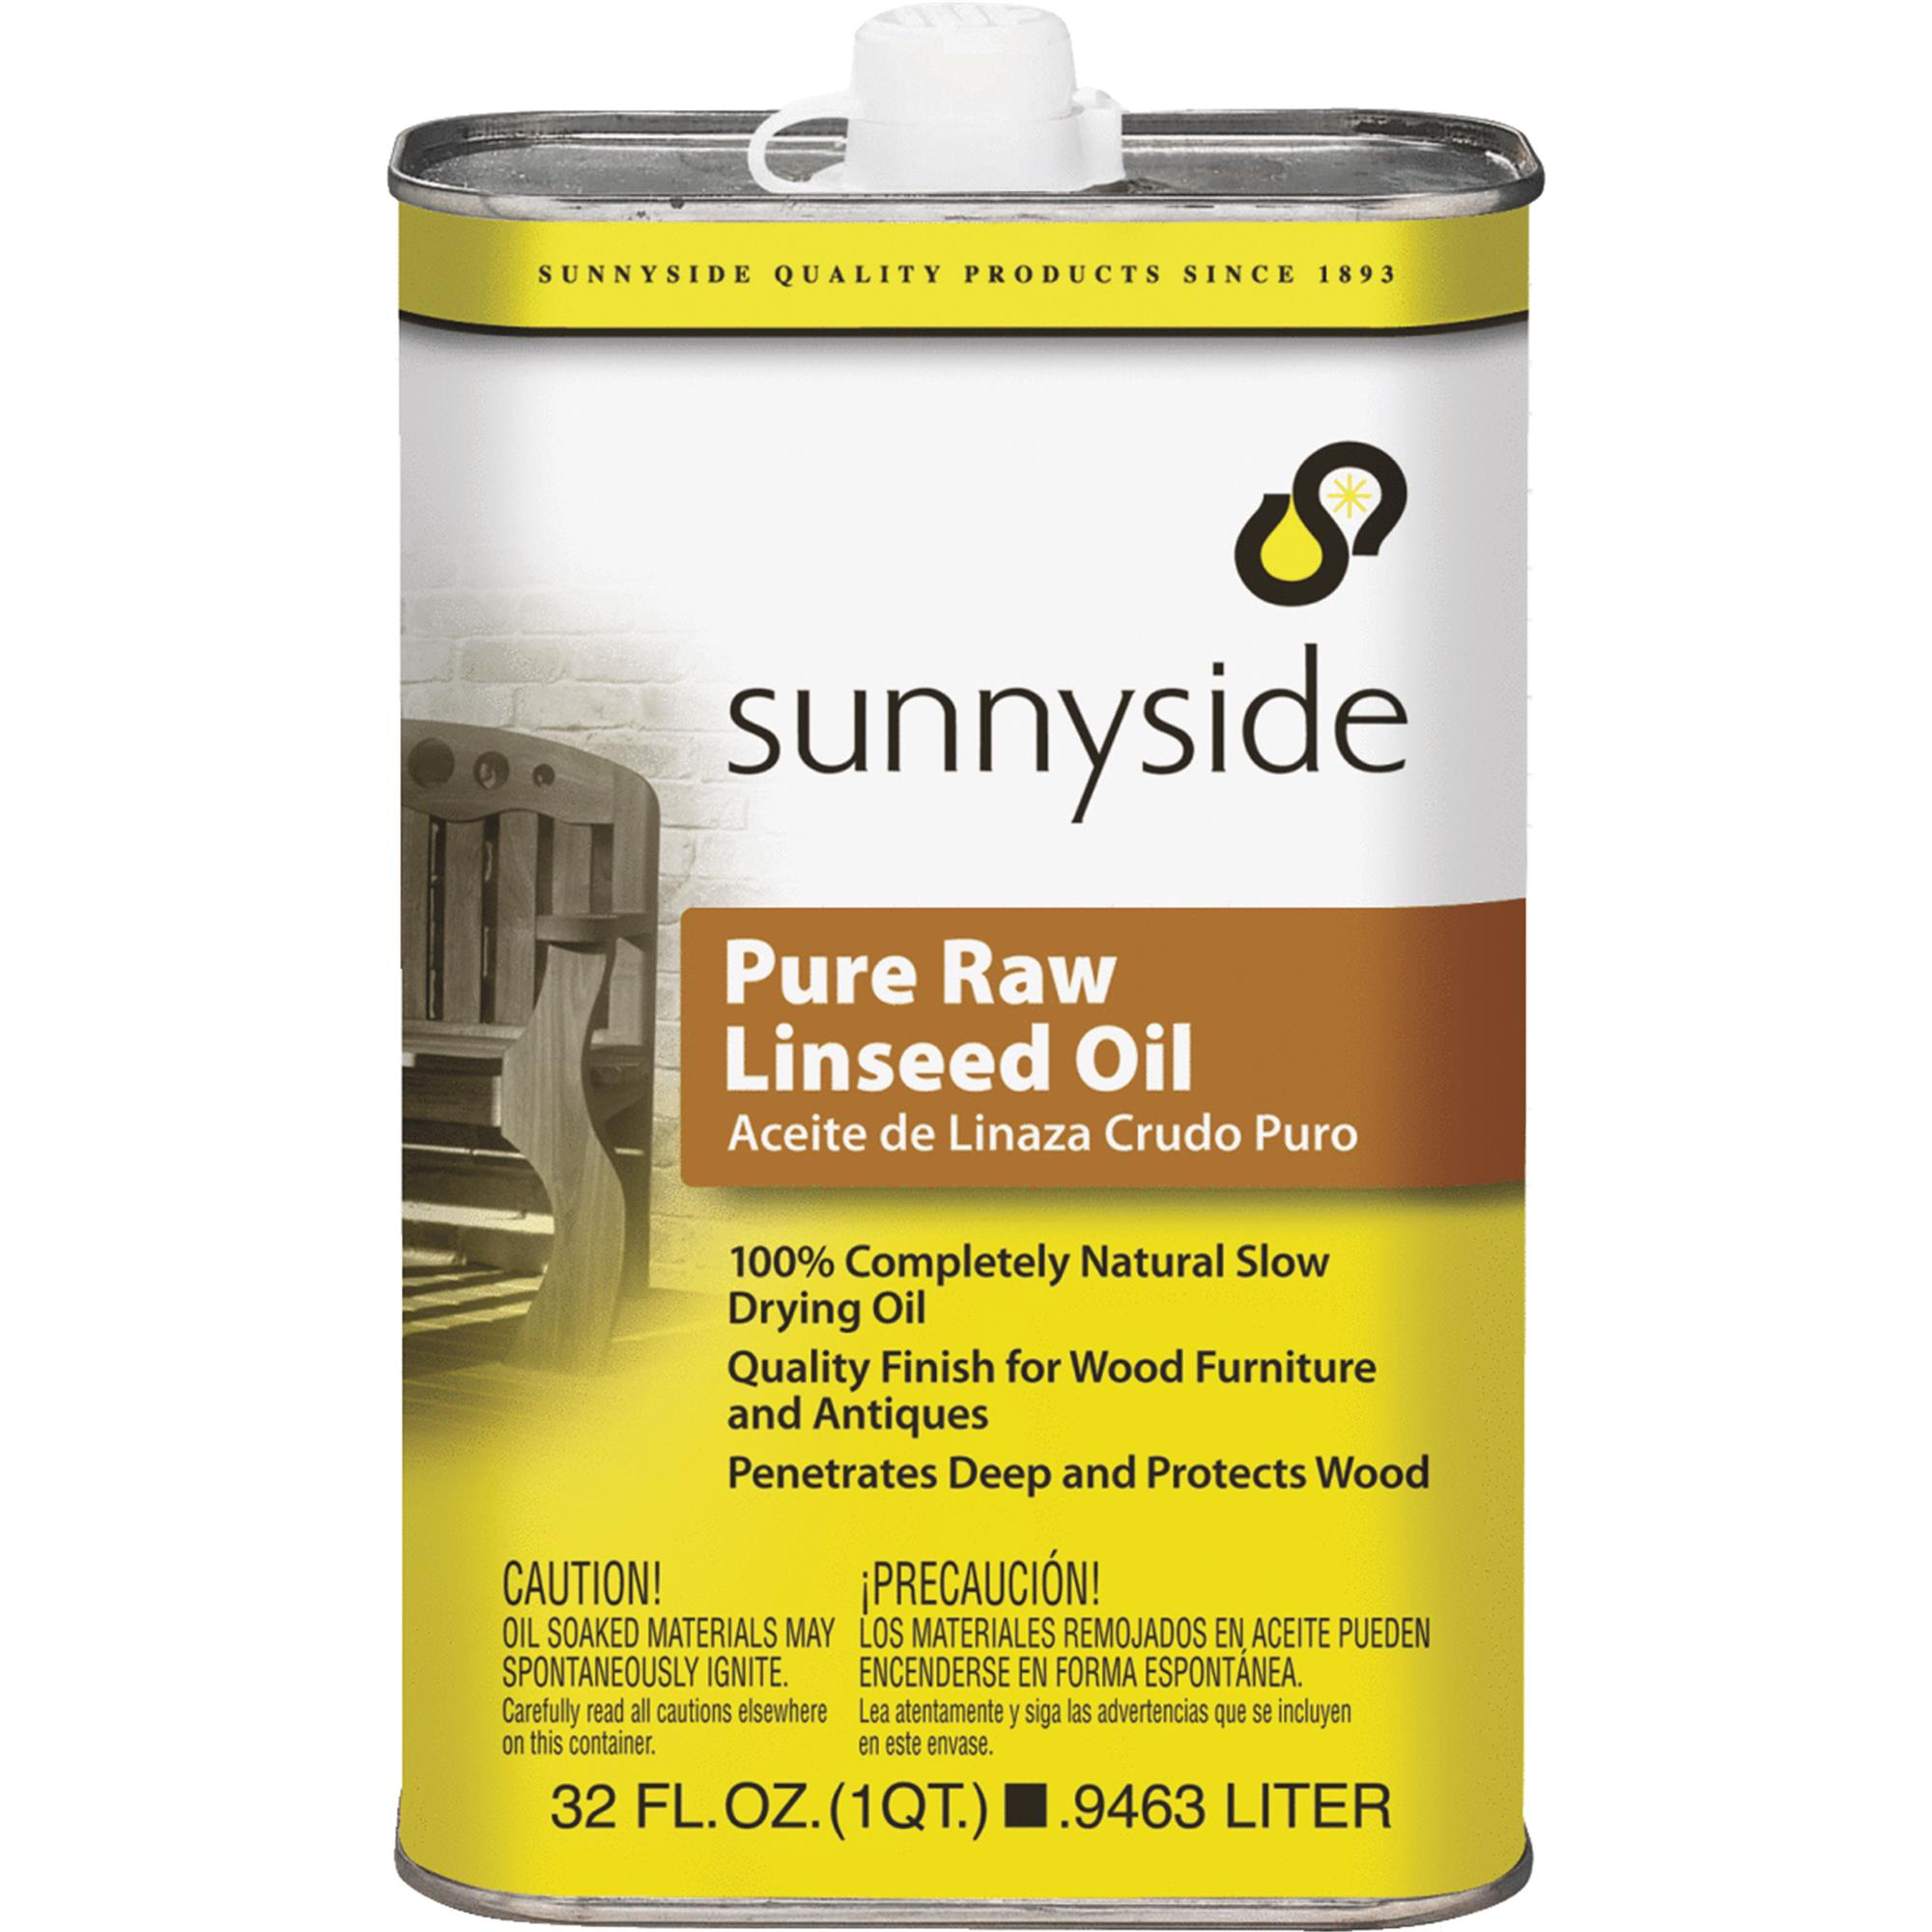 Sunnyside Pure Raw Linseed Oil